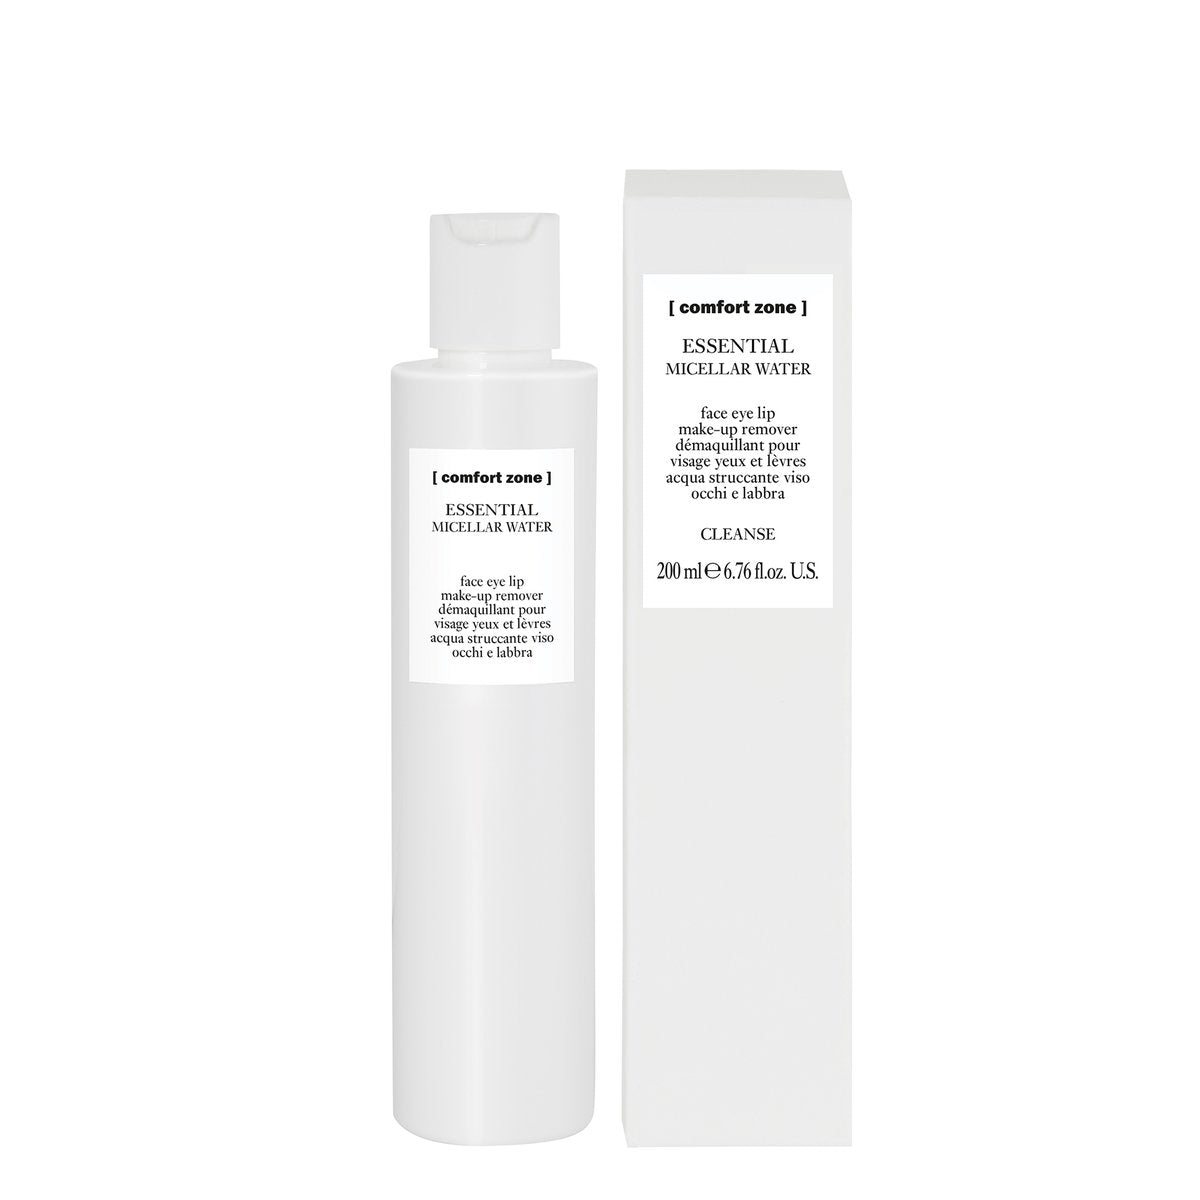 Essential Micellar Water